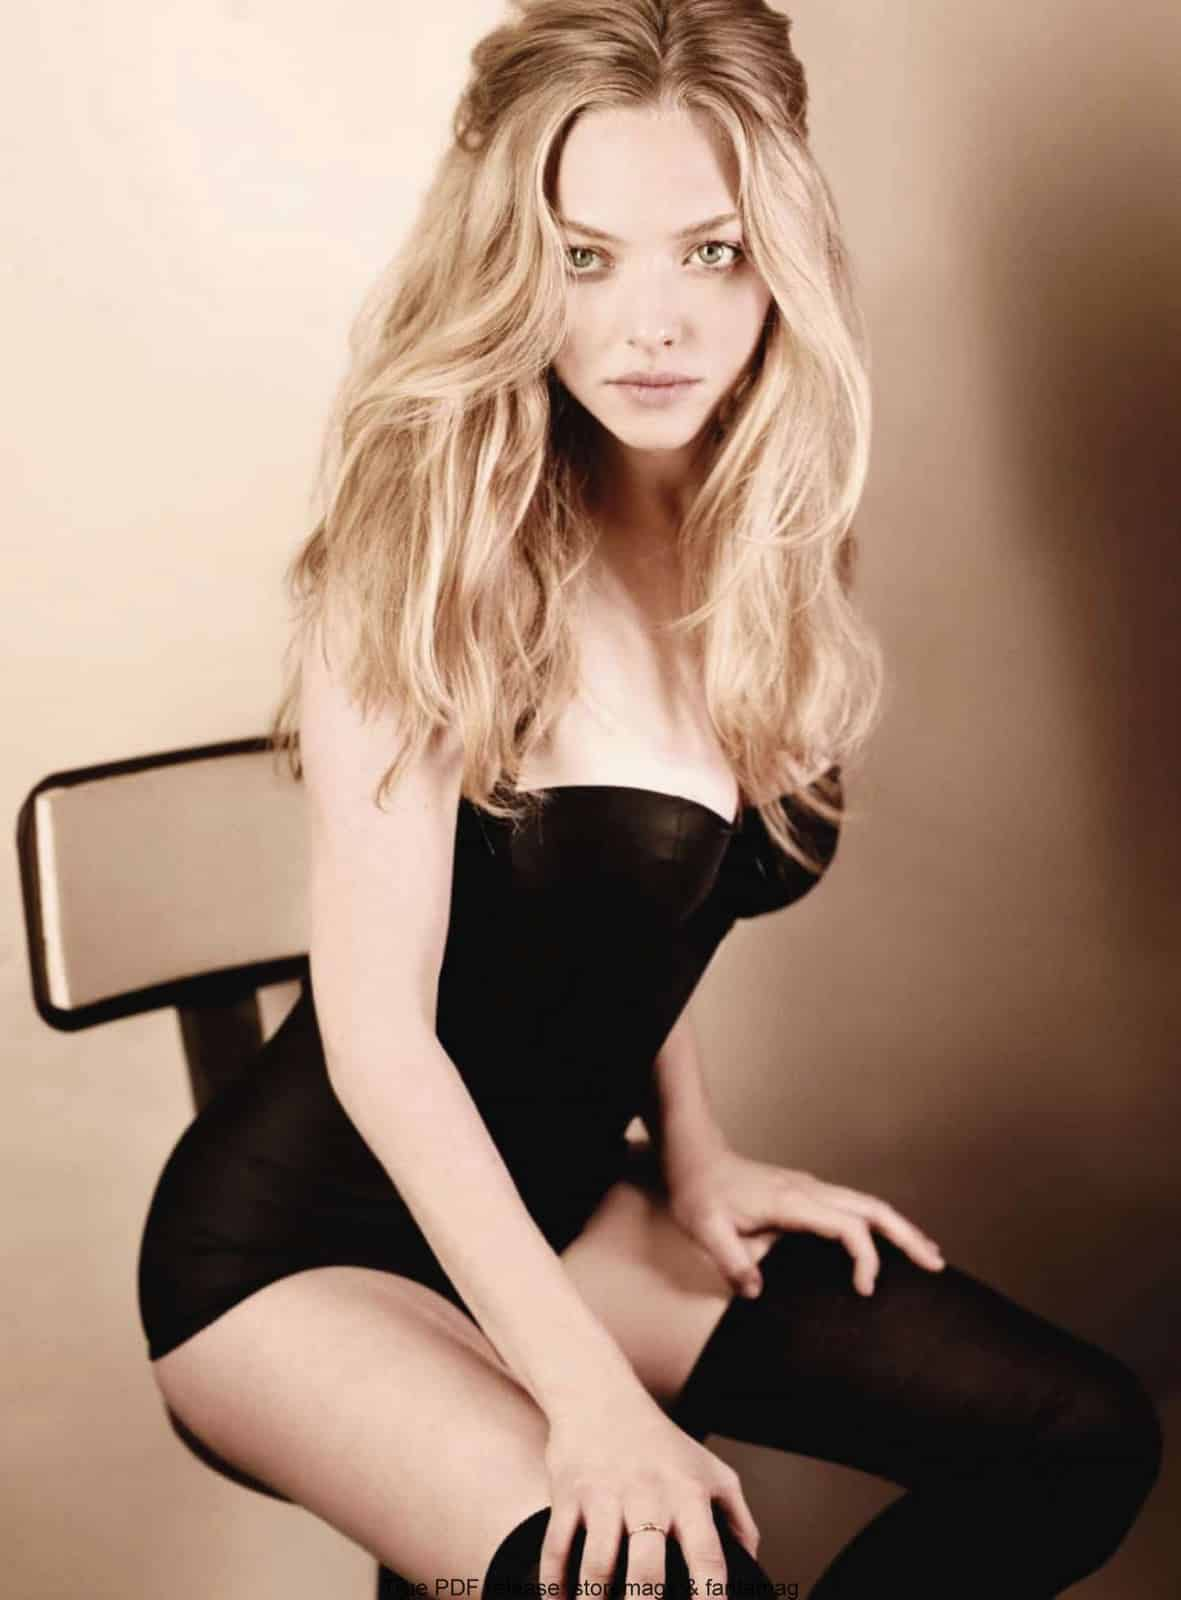 Sexy pictures of amanda seyfried